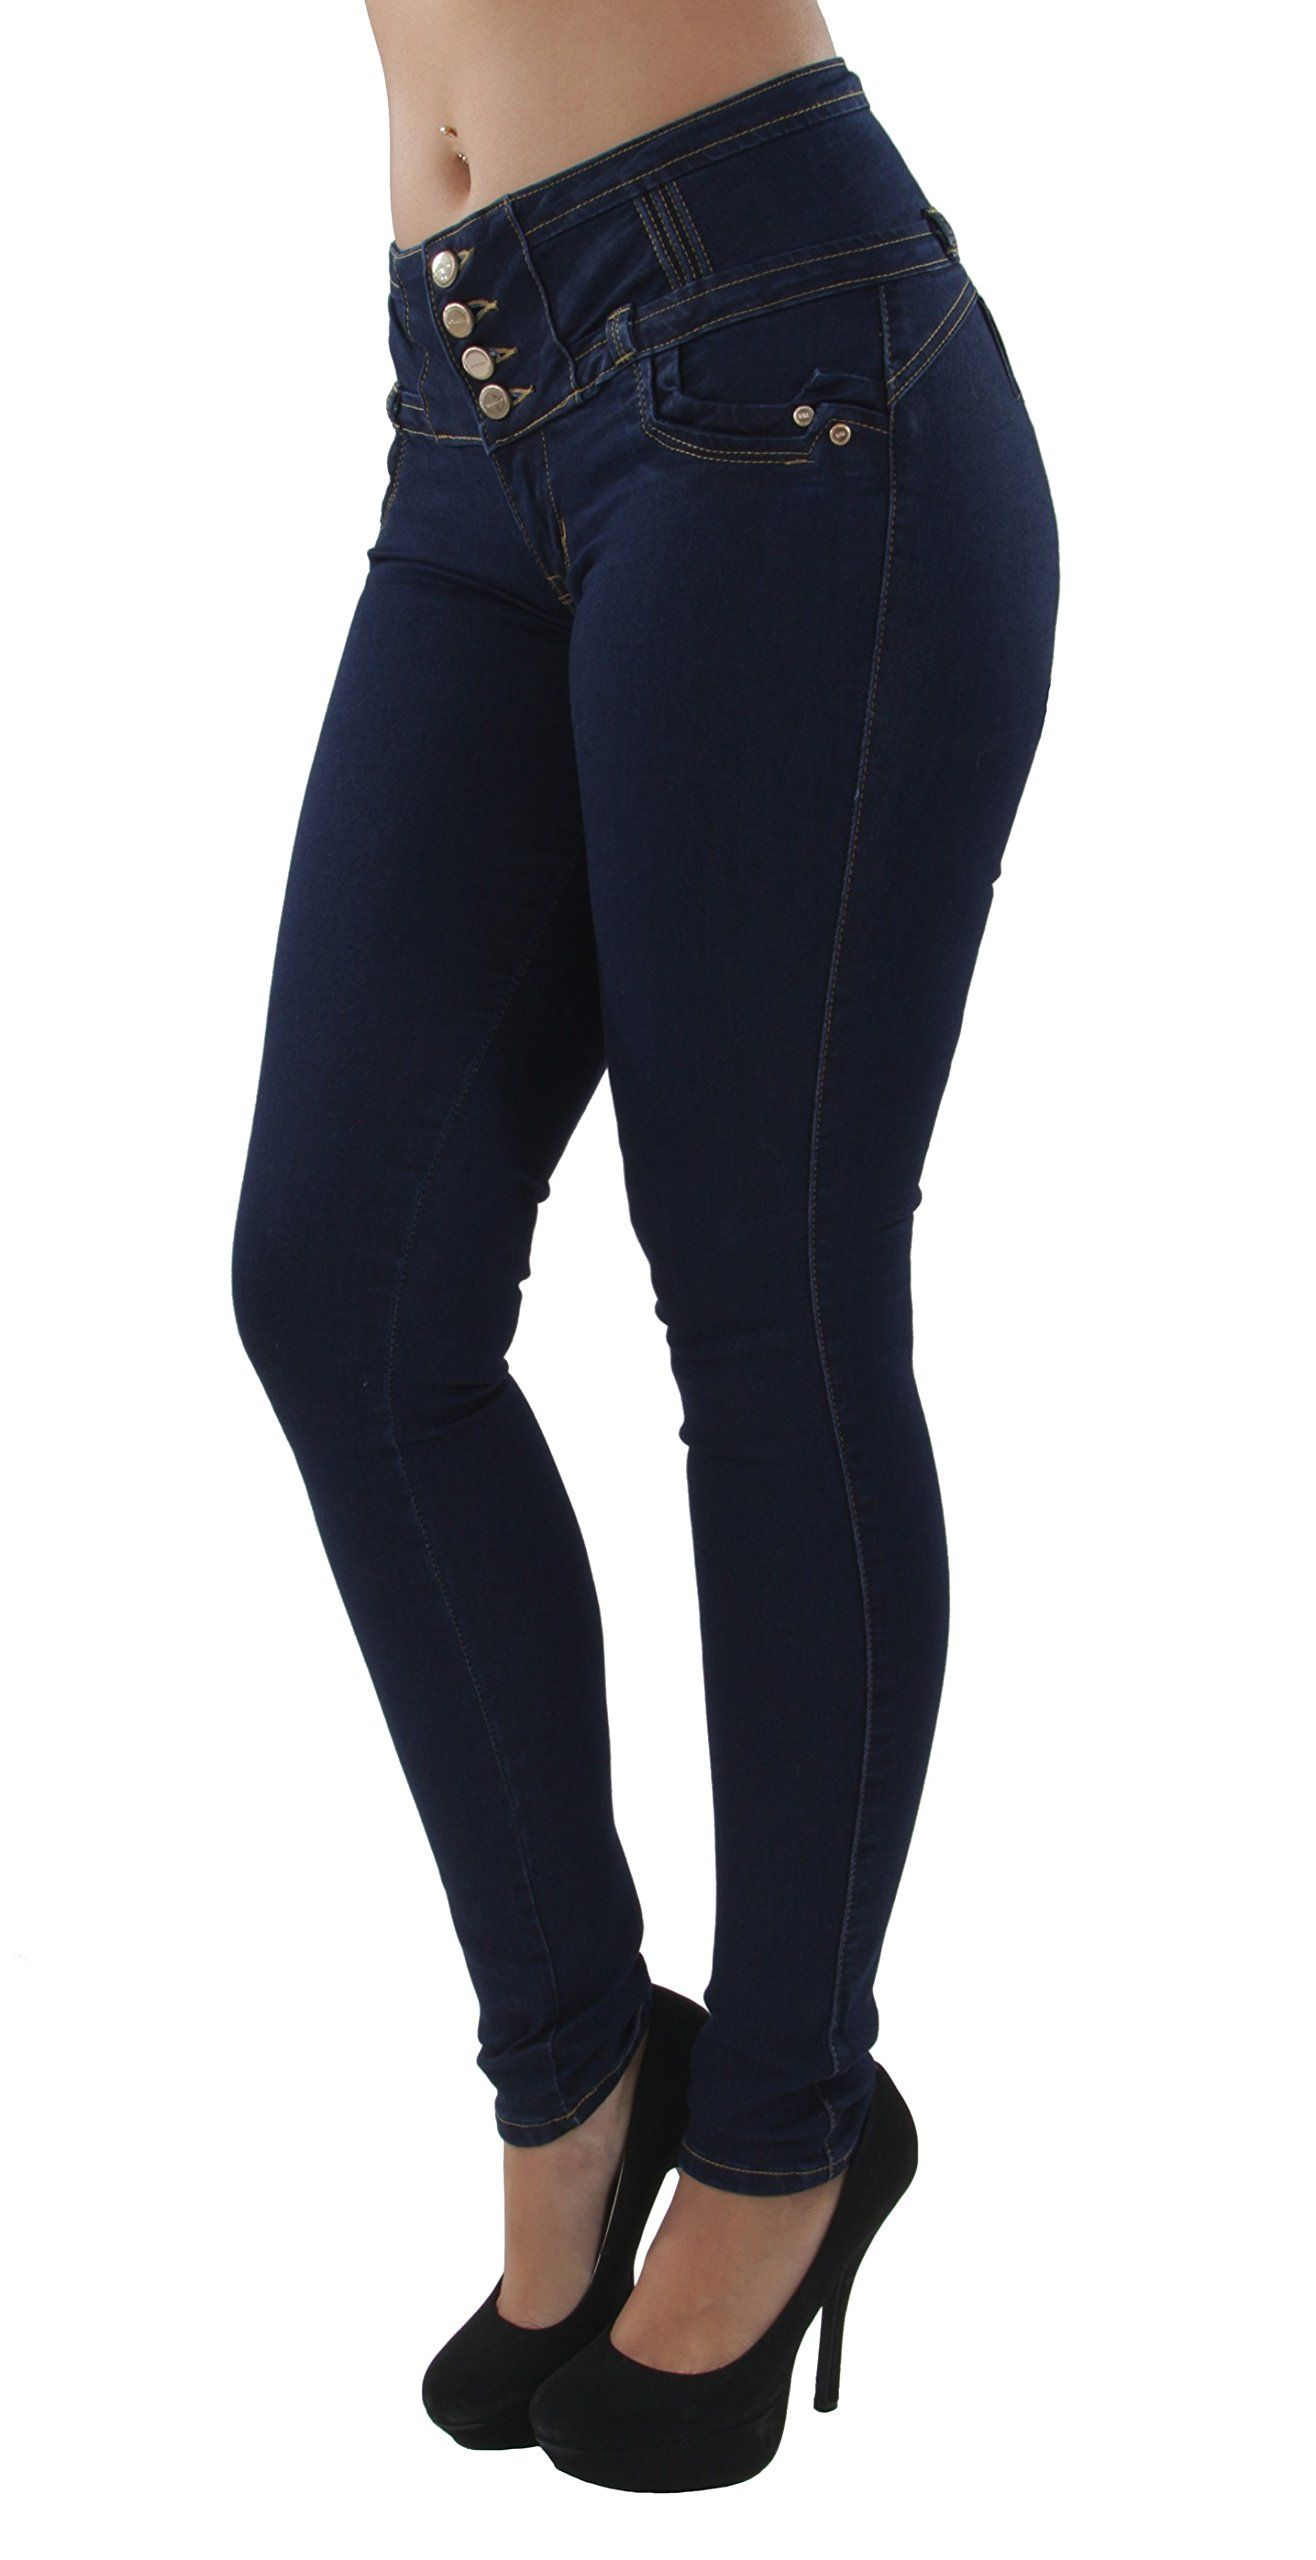 d7a68ece4ef Fashion2Love A10046P Plus Size Colombian Design Butt Lift Mid Waist Skinny  Jeans in Navy Size 16 -- Check this awesome product by going to the link at  the ...